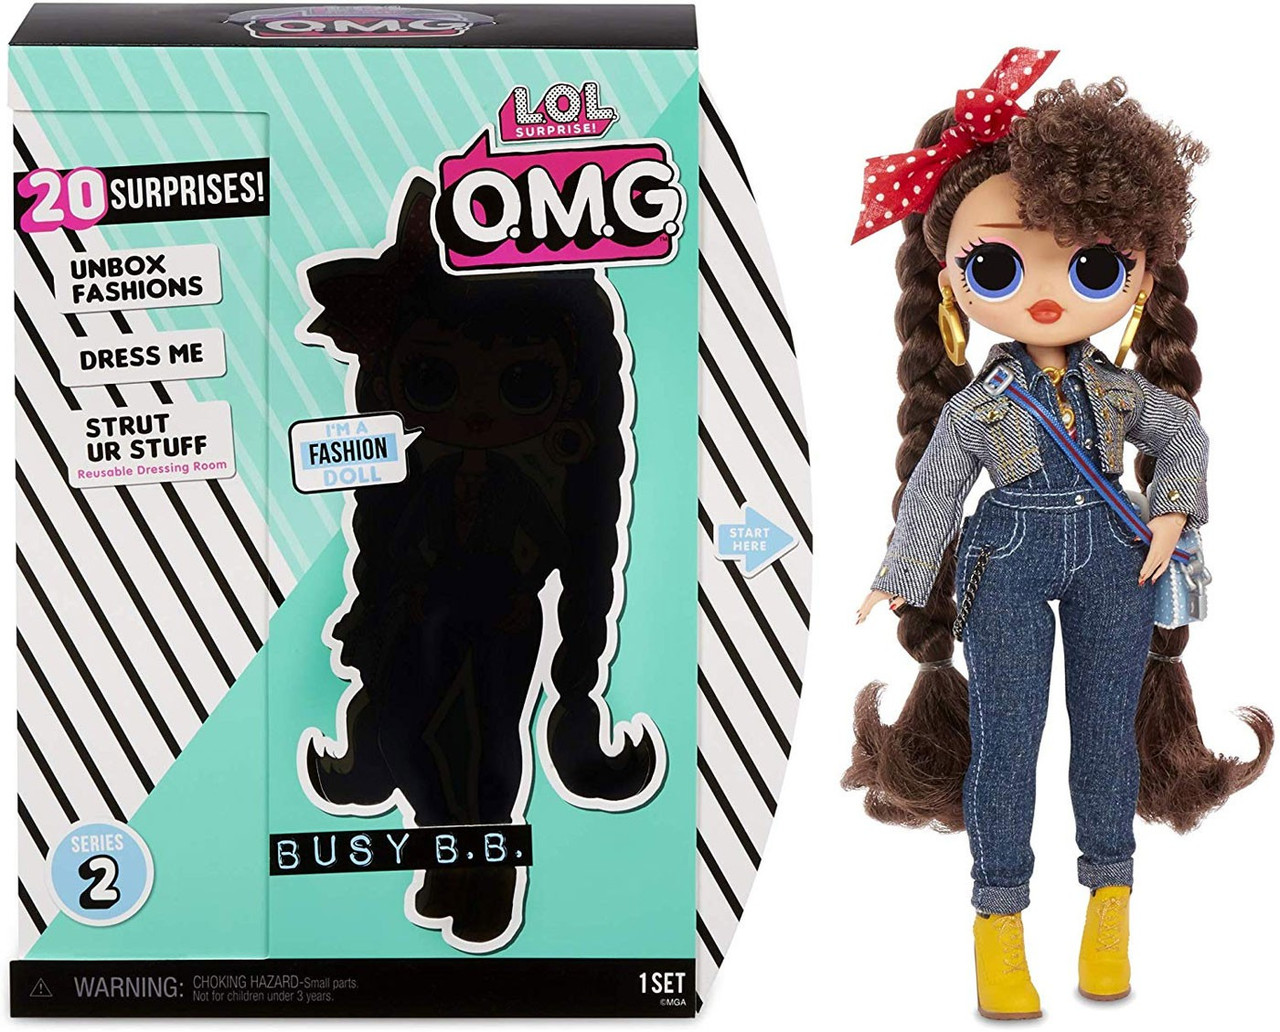 Lol Surprise Omg Series 2 Busy Bb Fashion Doll